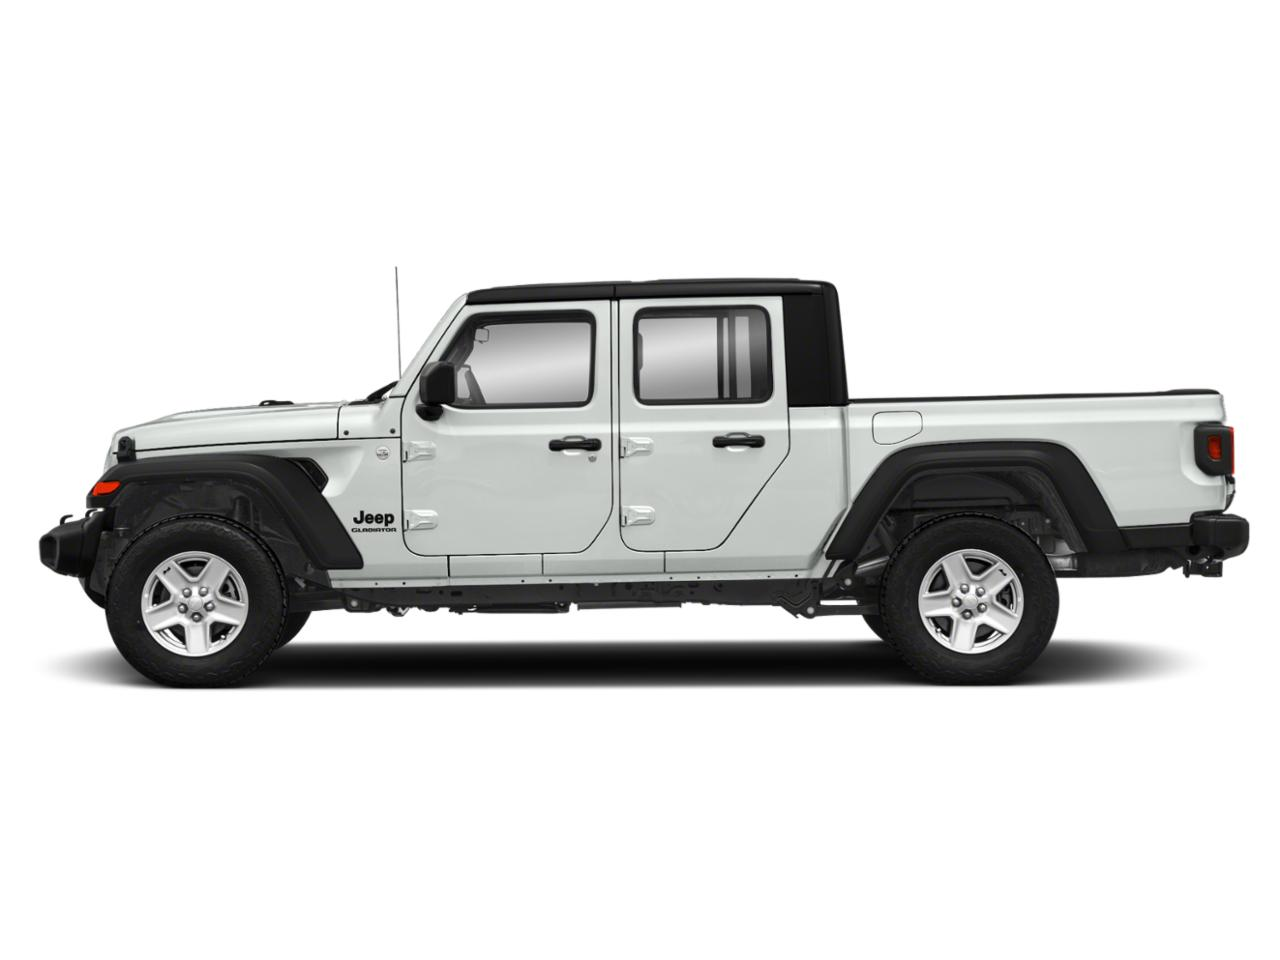 Used 2020 Jeep Gladiator Sport with VIN 1C6HJTAG8LL151224 for sale in Willmar, Minnesota